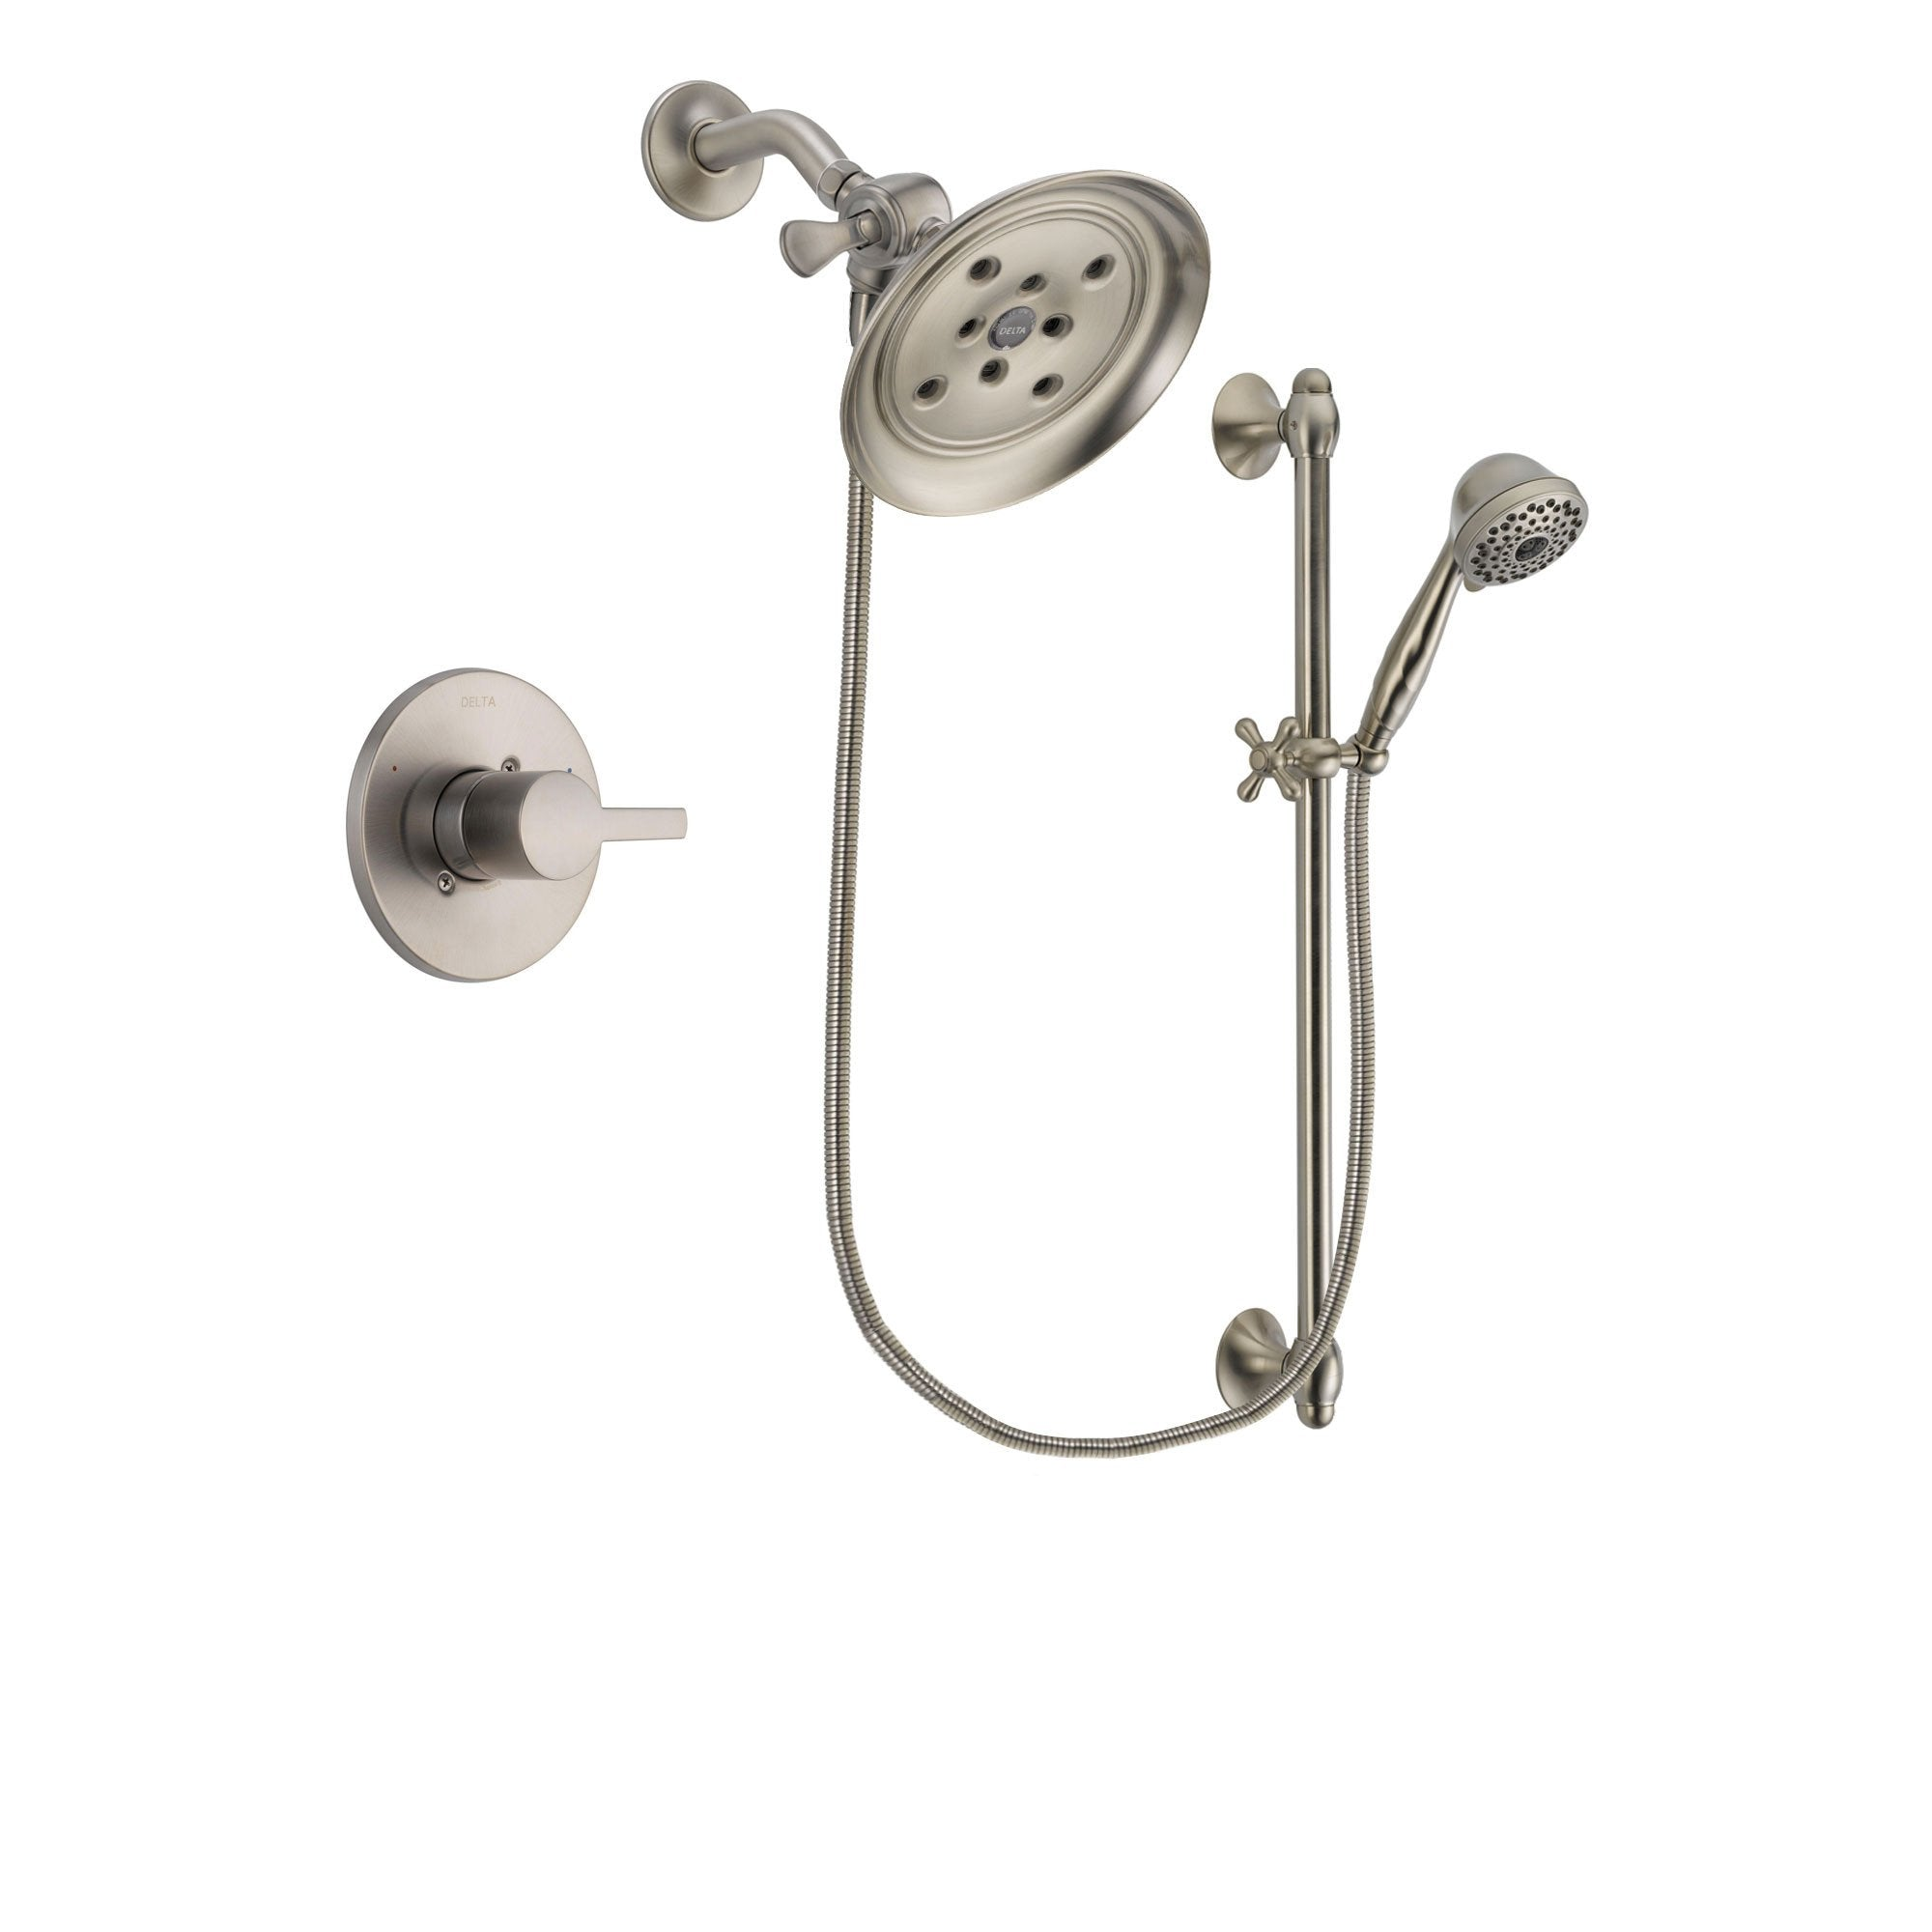 Delta Compel Stainless Steel Finish Shower Faucet System w/ Hand Spray DSP1732V